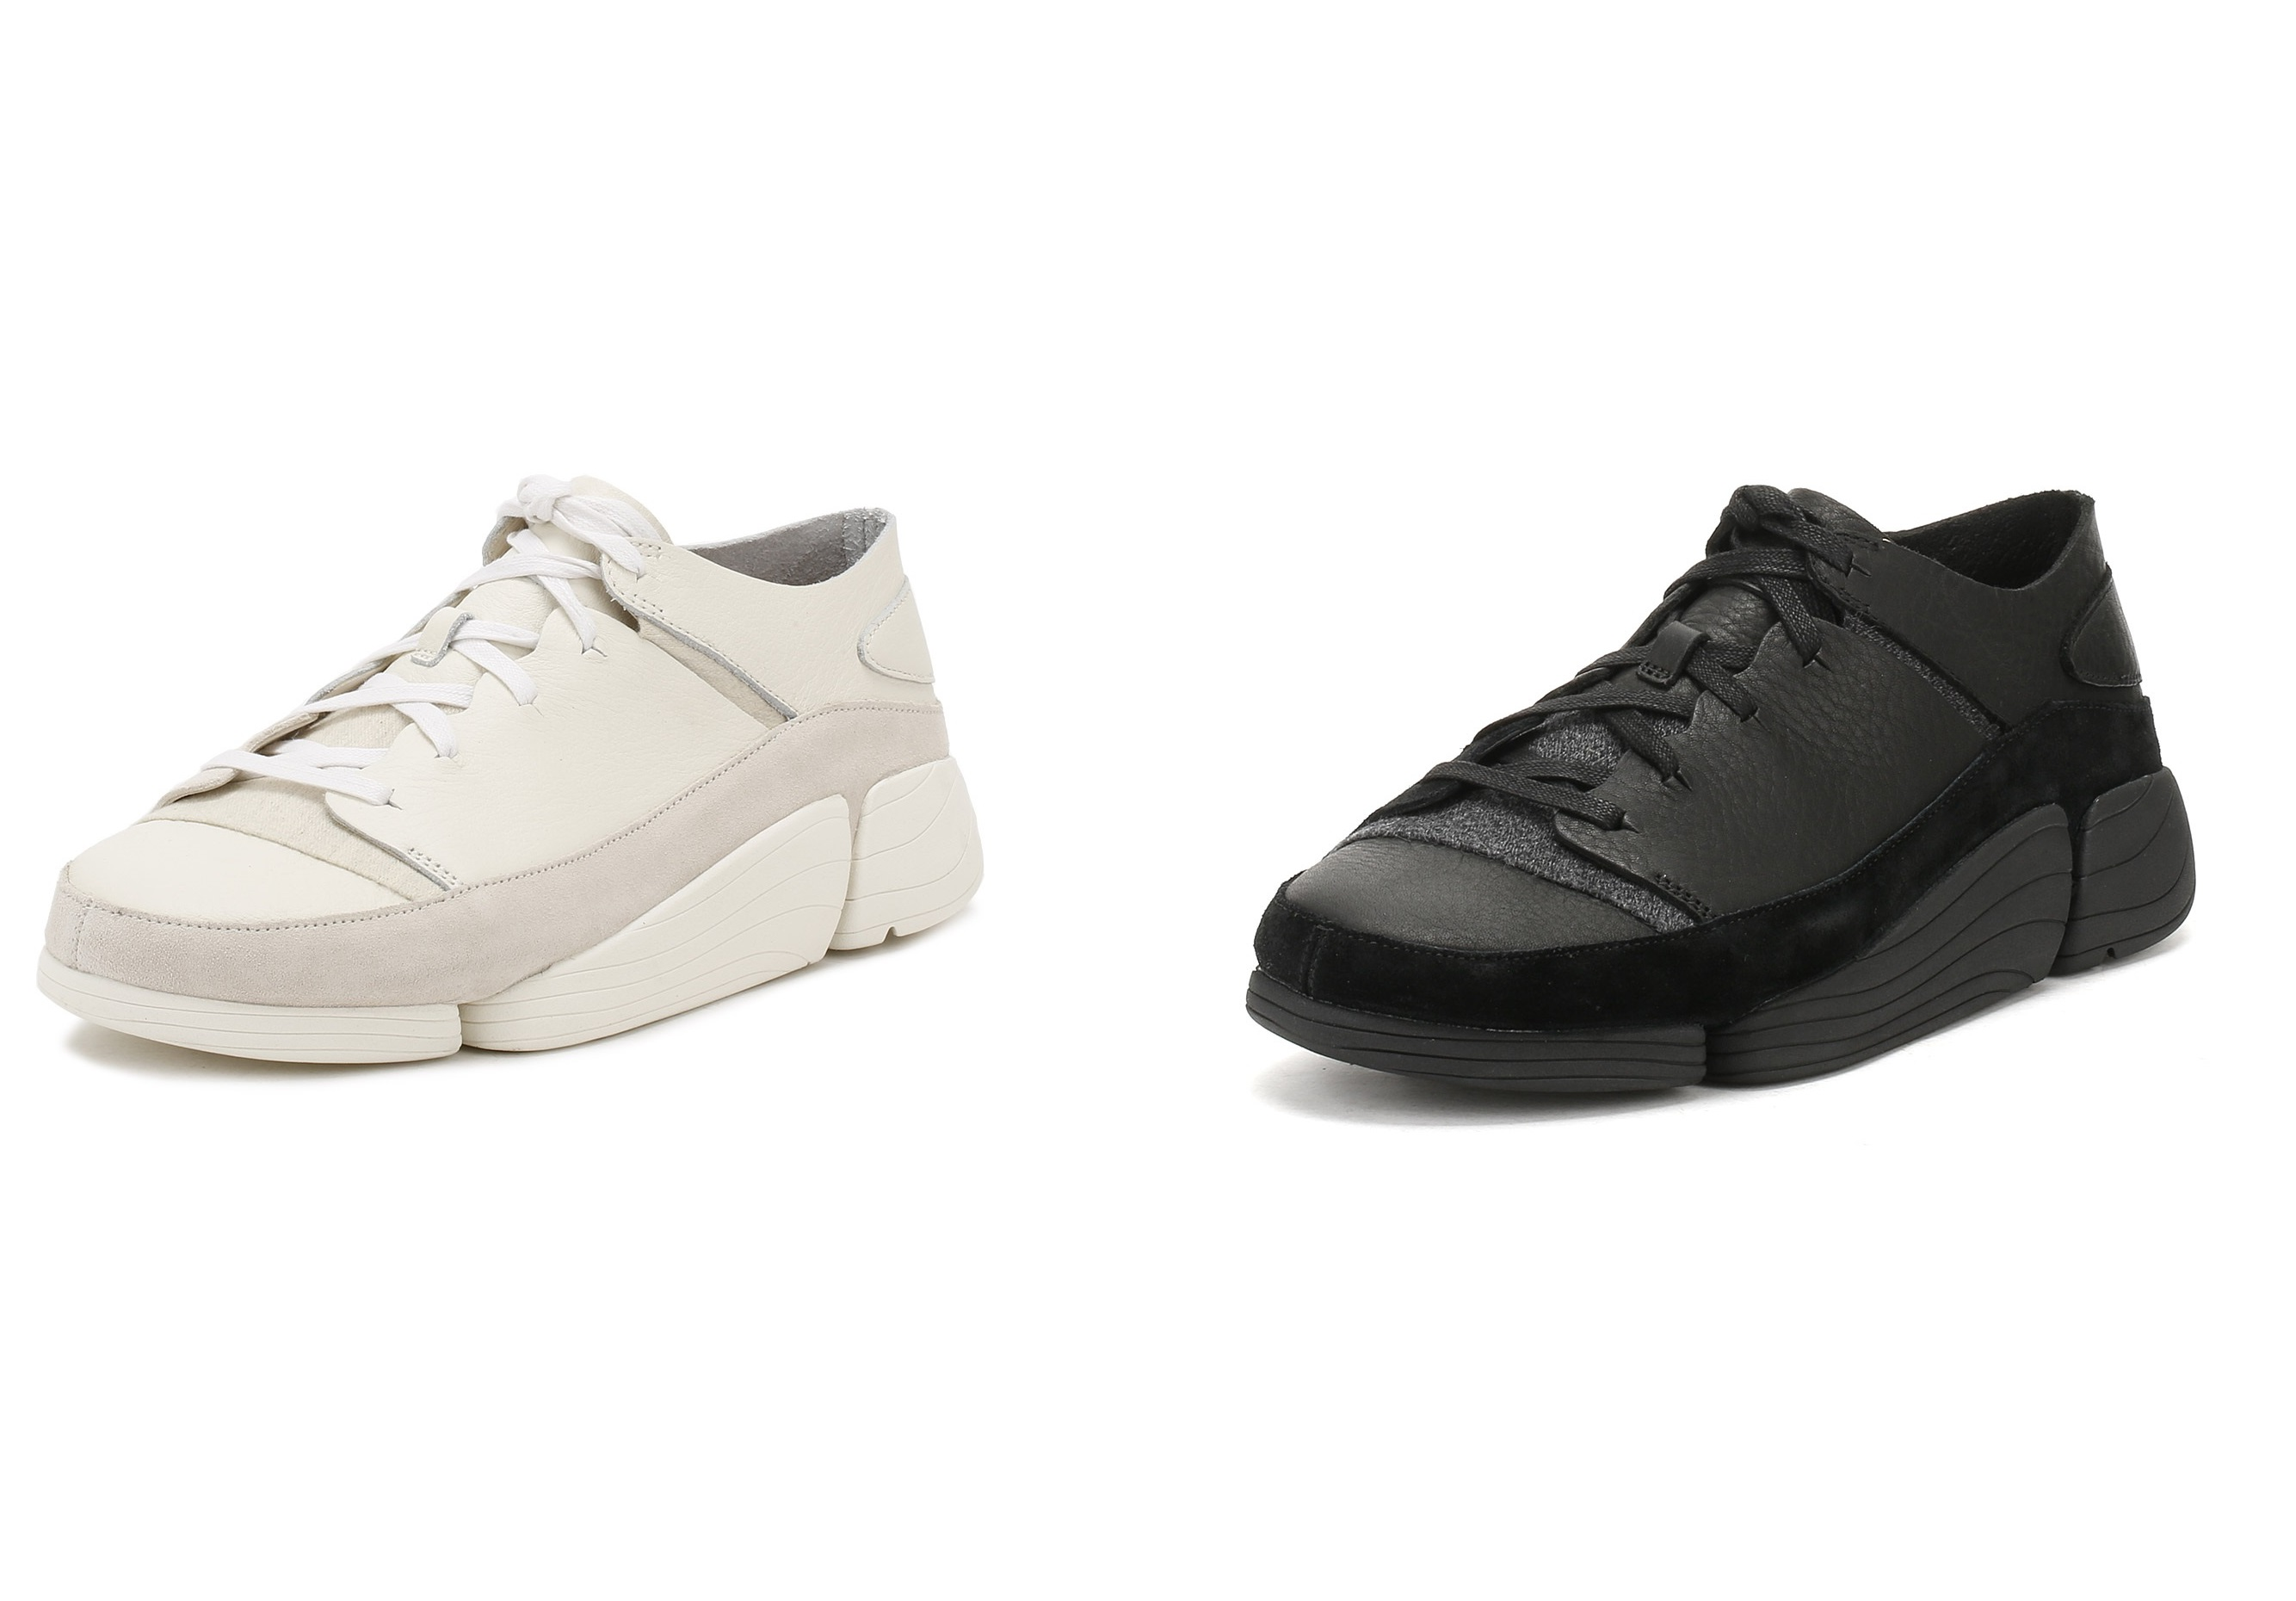 0d5ad16b8b854d ... part trainer/ part classic Clarks mocassin. The modern and stylish shoe  comes in high-quality leather with elastic fastening. The innovative  three-part ...